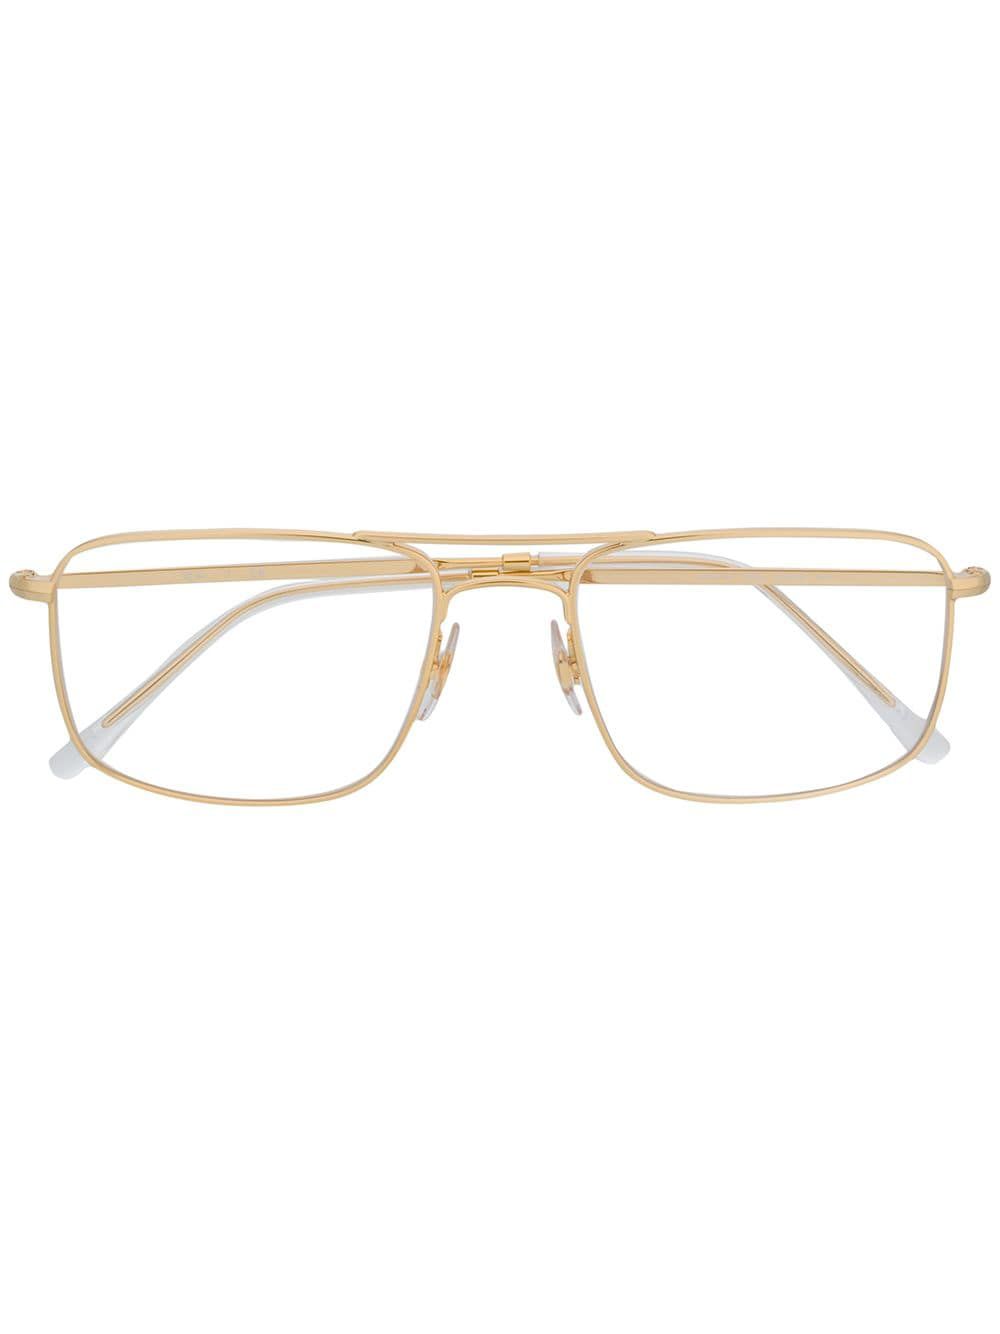 caba8938a2 Ray Ban Ray-Ban Square Glasses - Gold